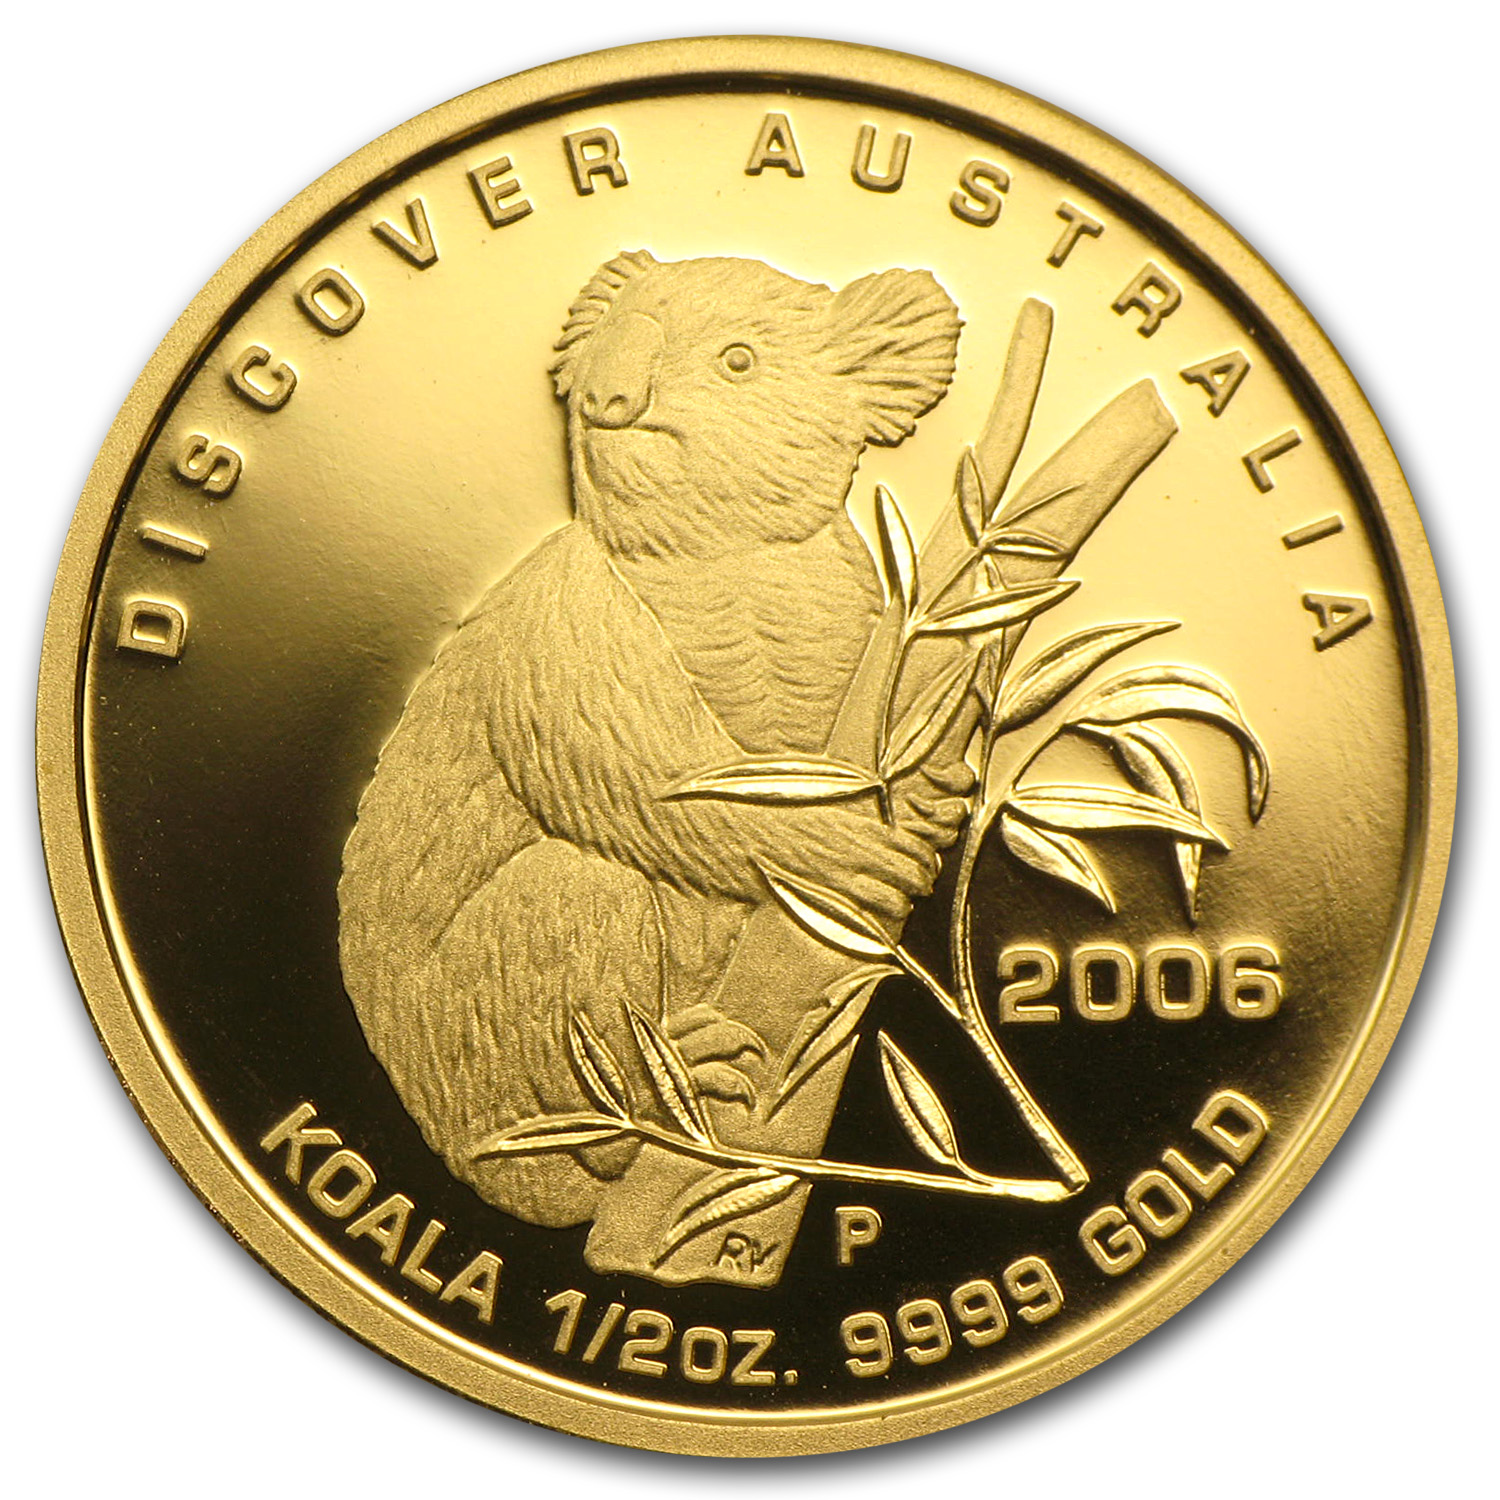 2006 Australia 1/2 oz Gold Koala Proof (In Capsule)